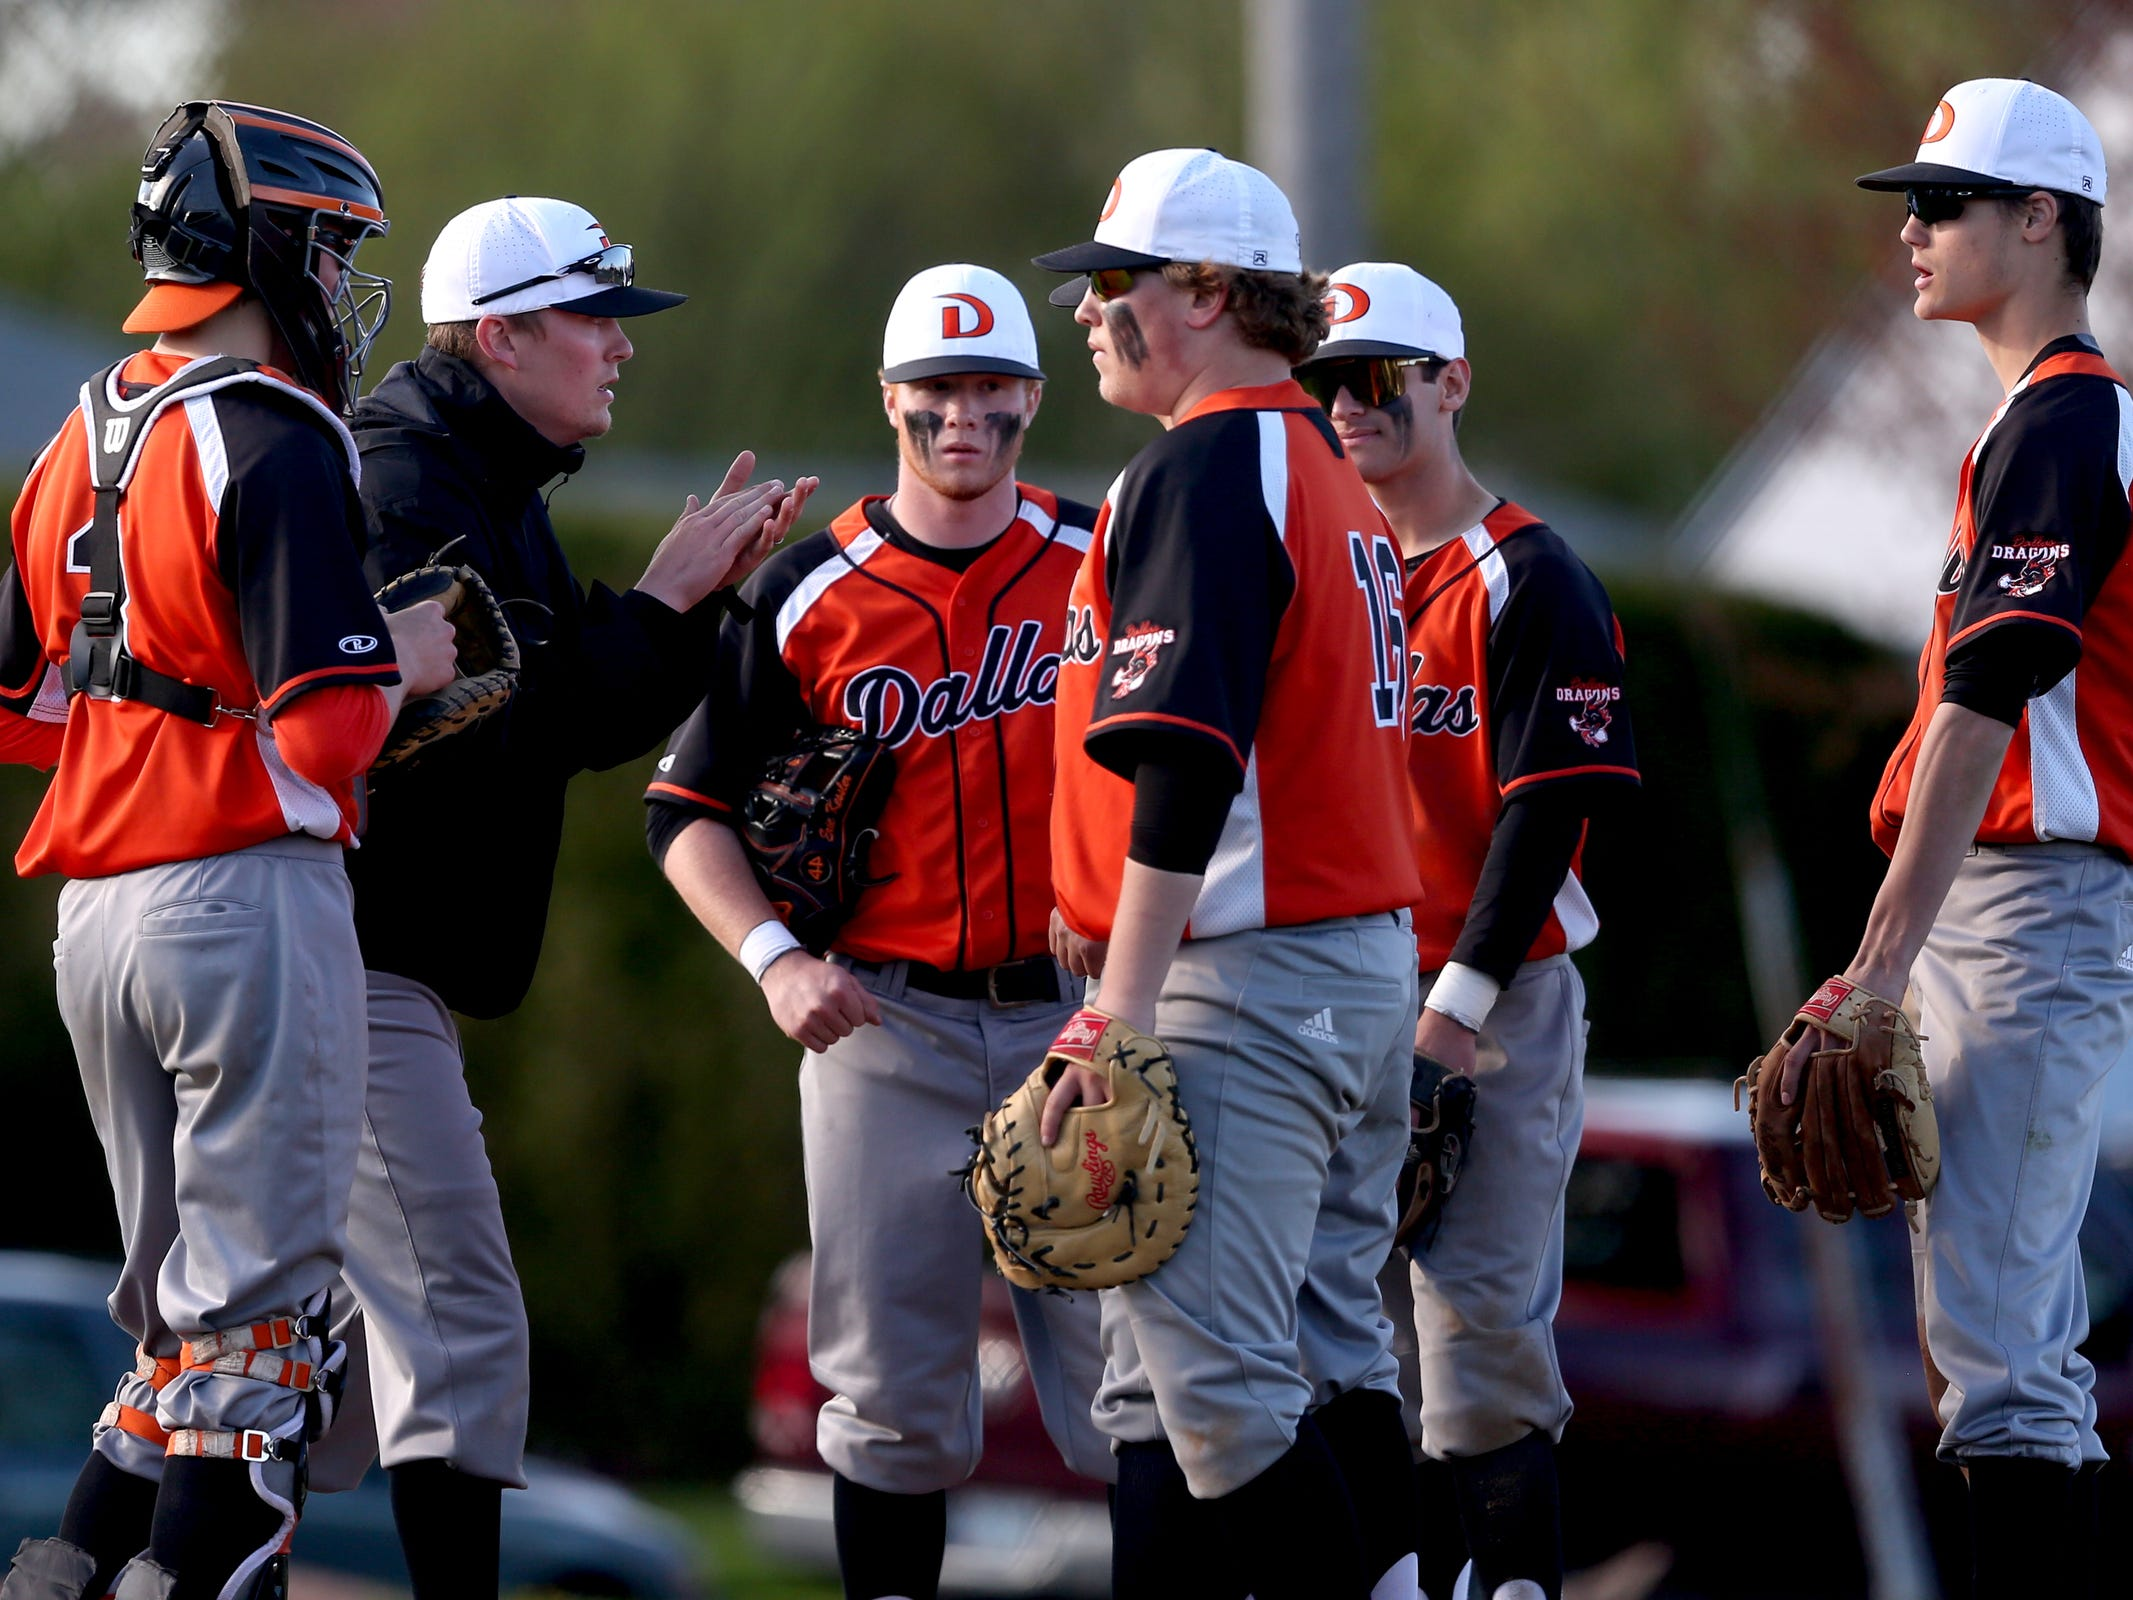 Dallas head coach Keeton Luther talks to his team on the mound in the Dallas vs. North Salem baseball game in Salem on April 12, 2019.